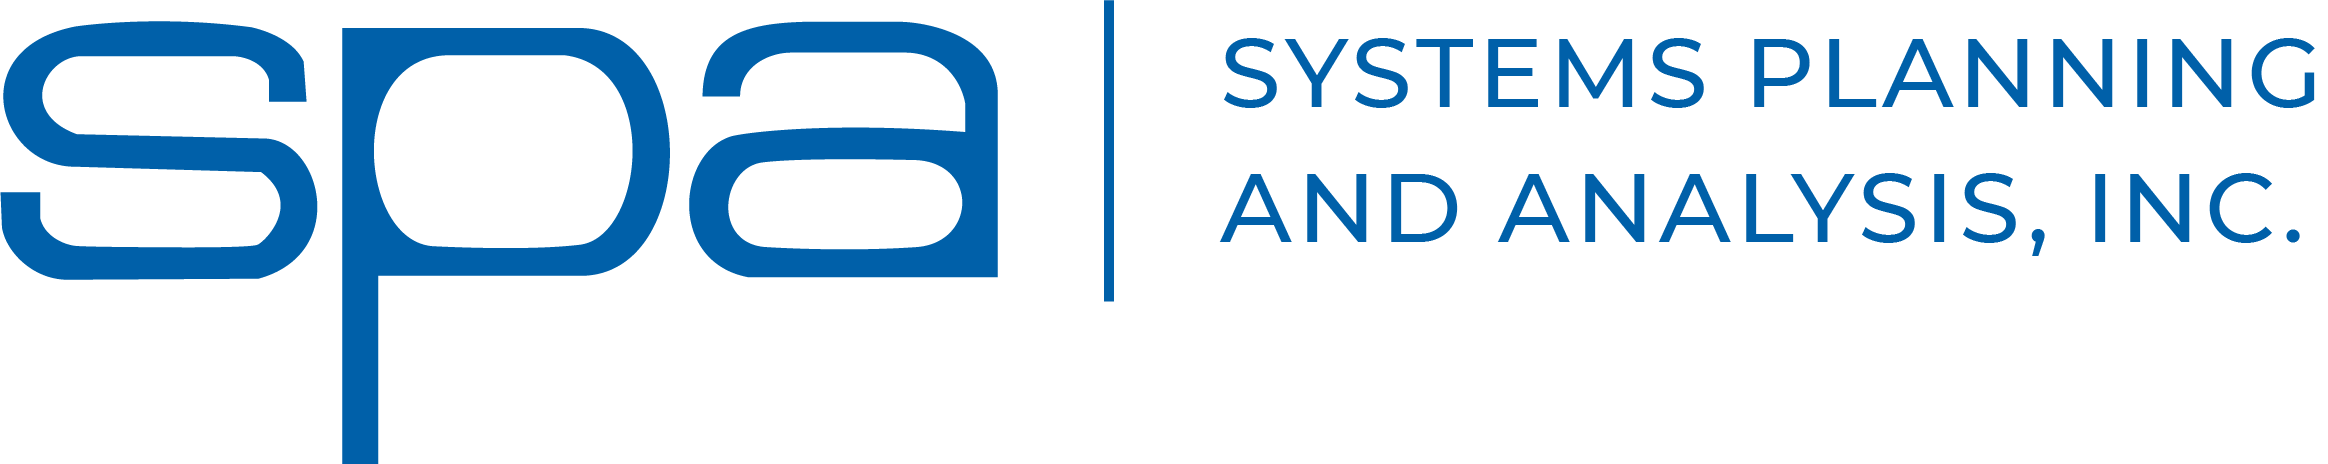 Systems Planning and Analysis, Inc. logo